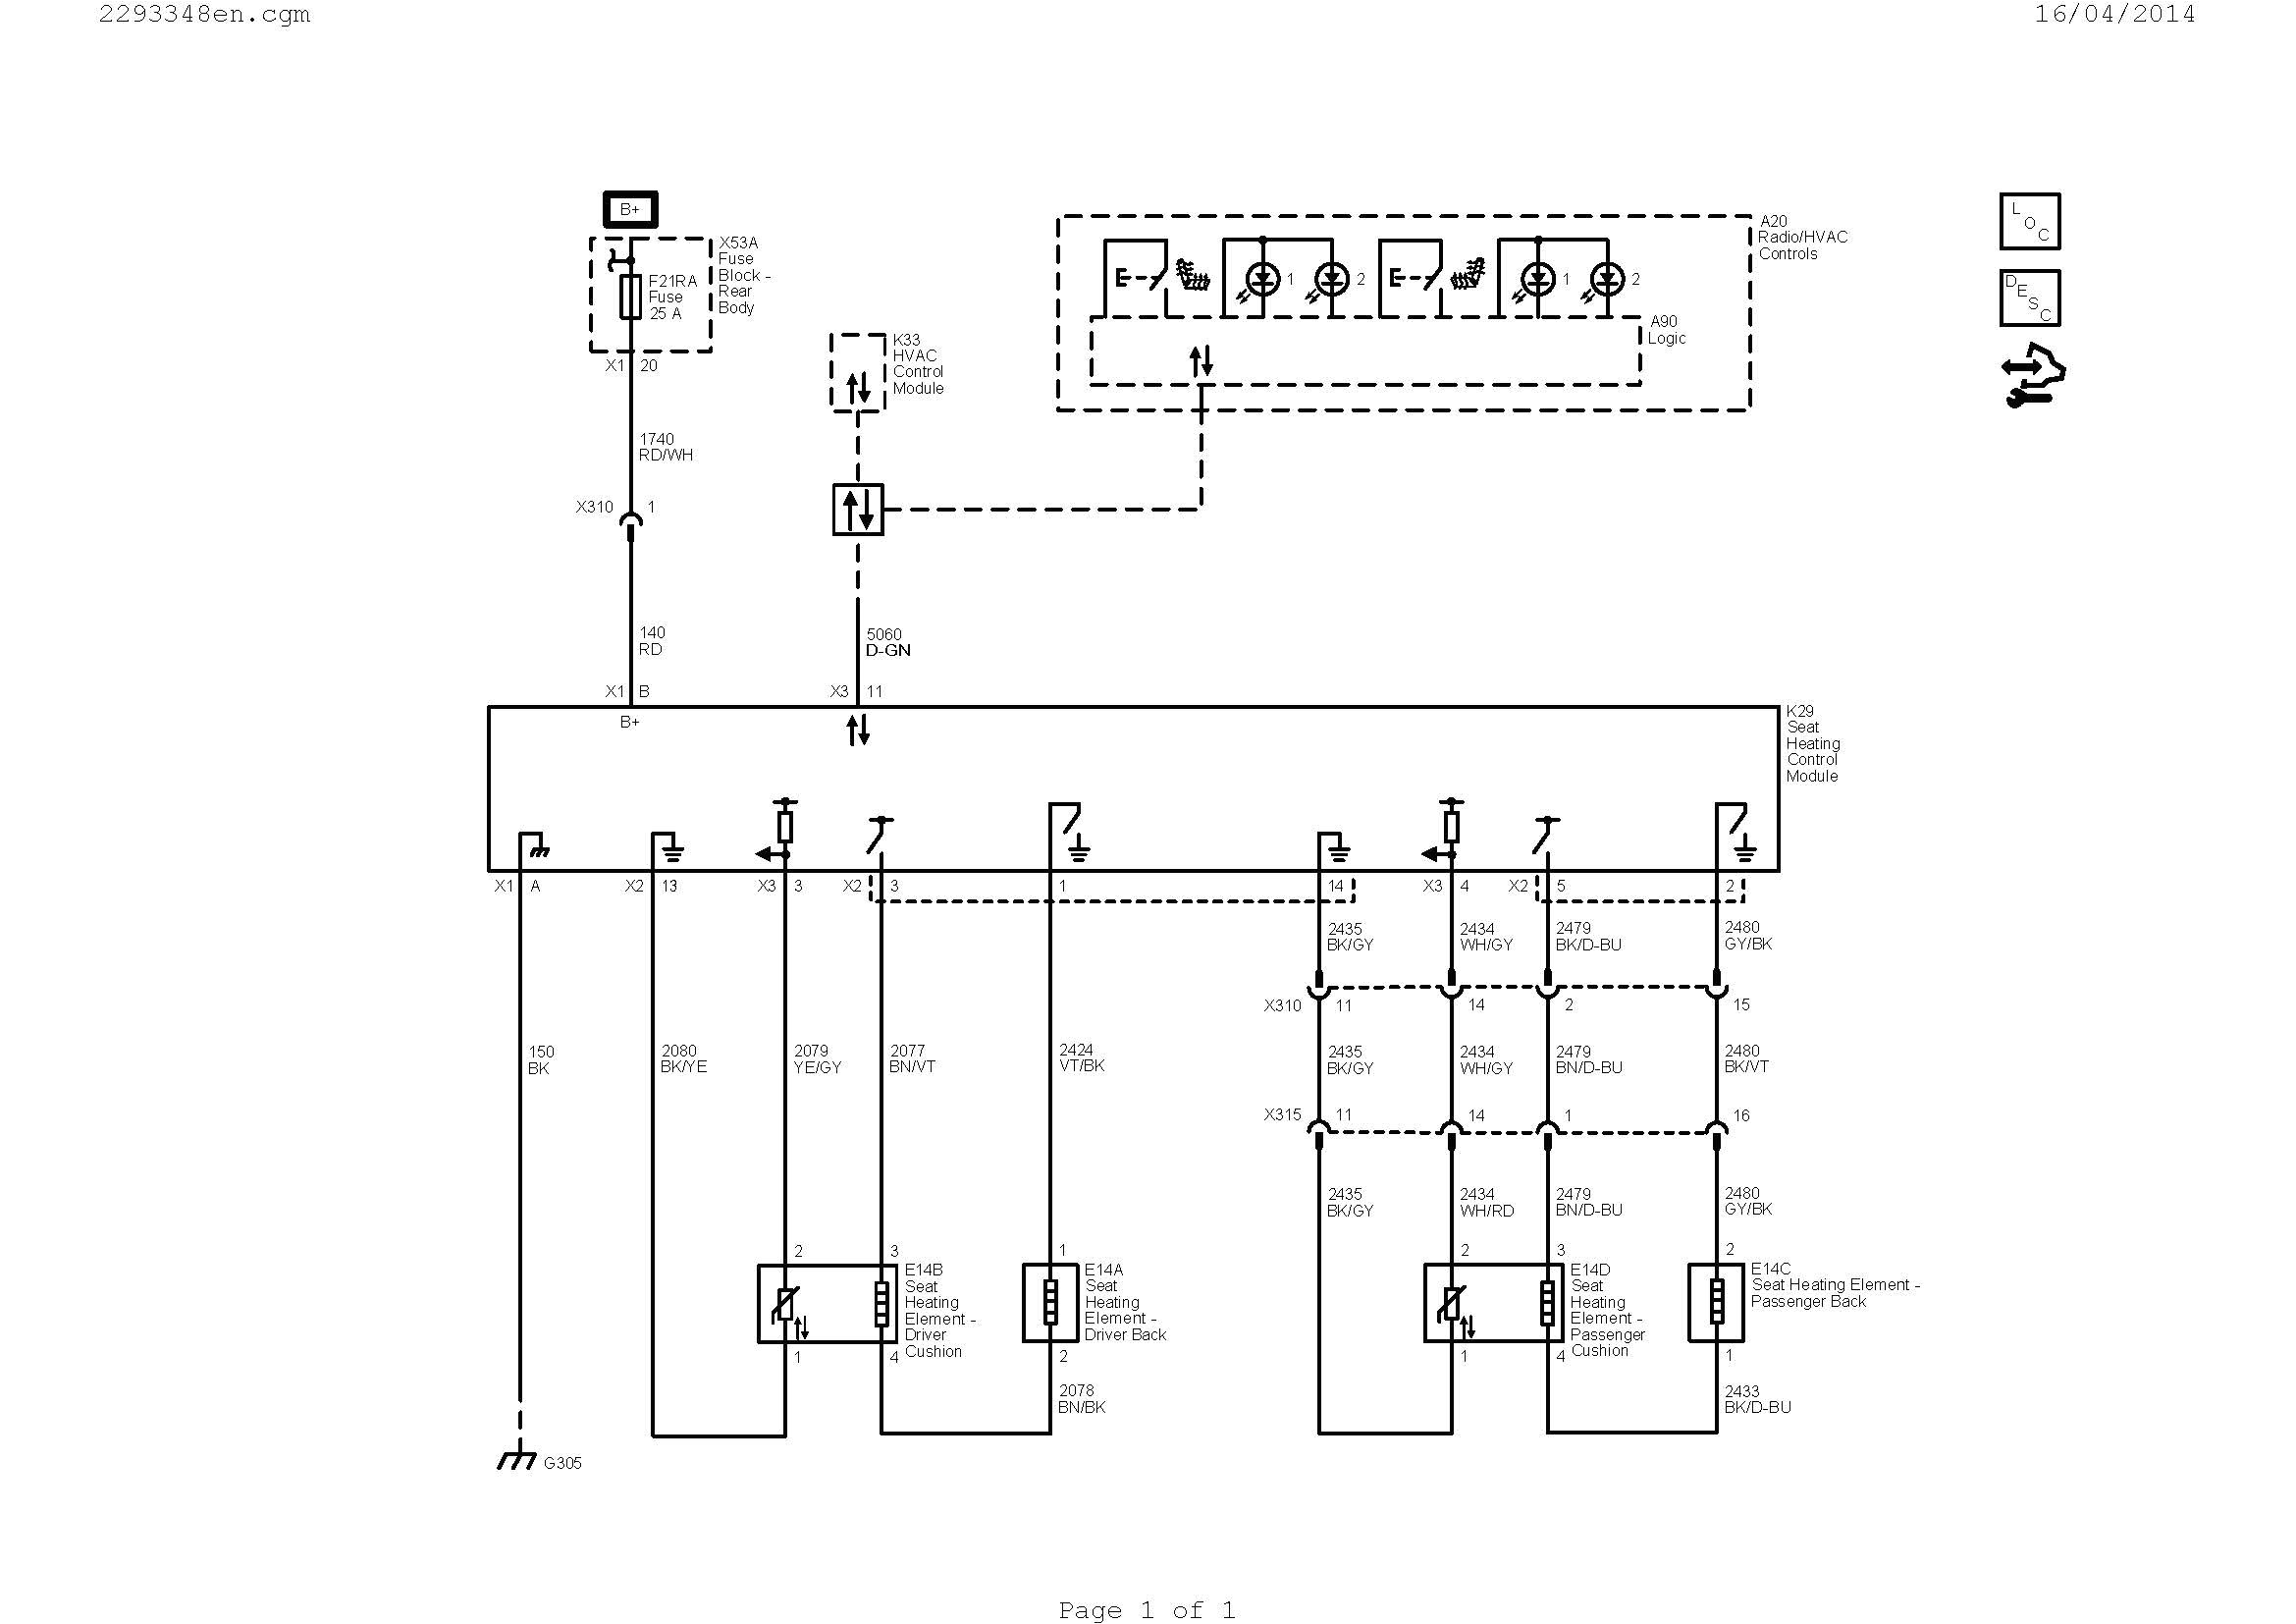 trailer wiring diagram with electric brakes wiring diagram trailer electric brakes fresh trailer wire diagram new hvac diagram 0d wire diagram 15p jpg